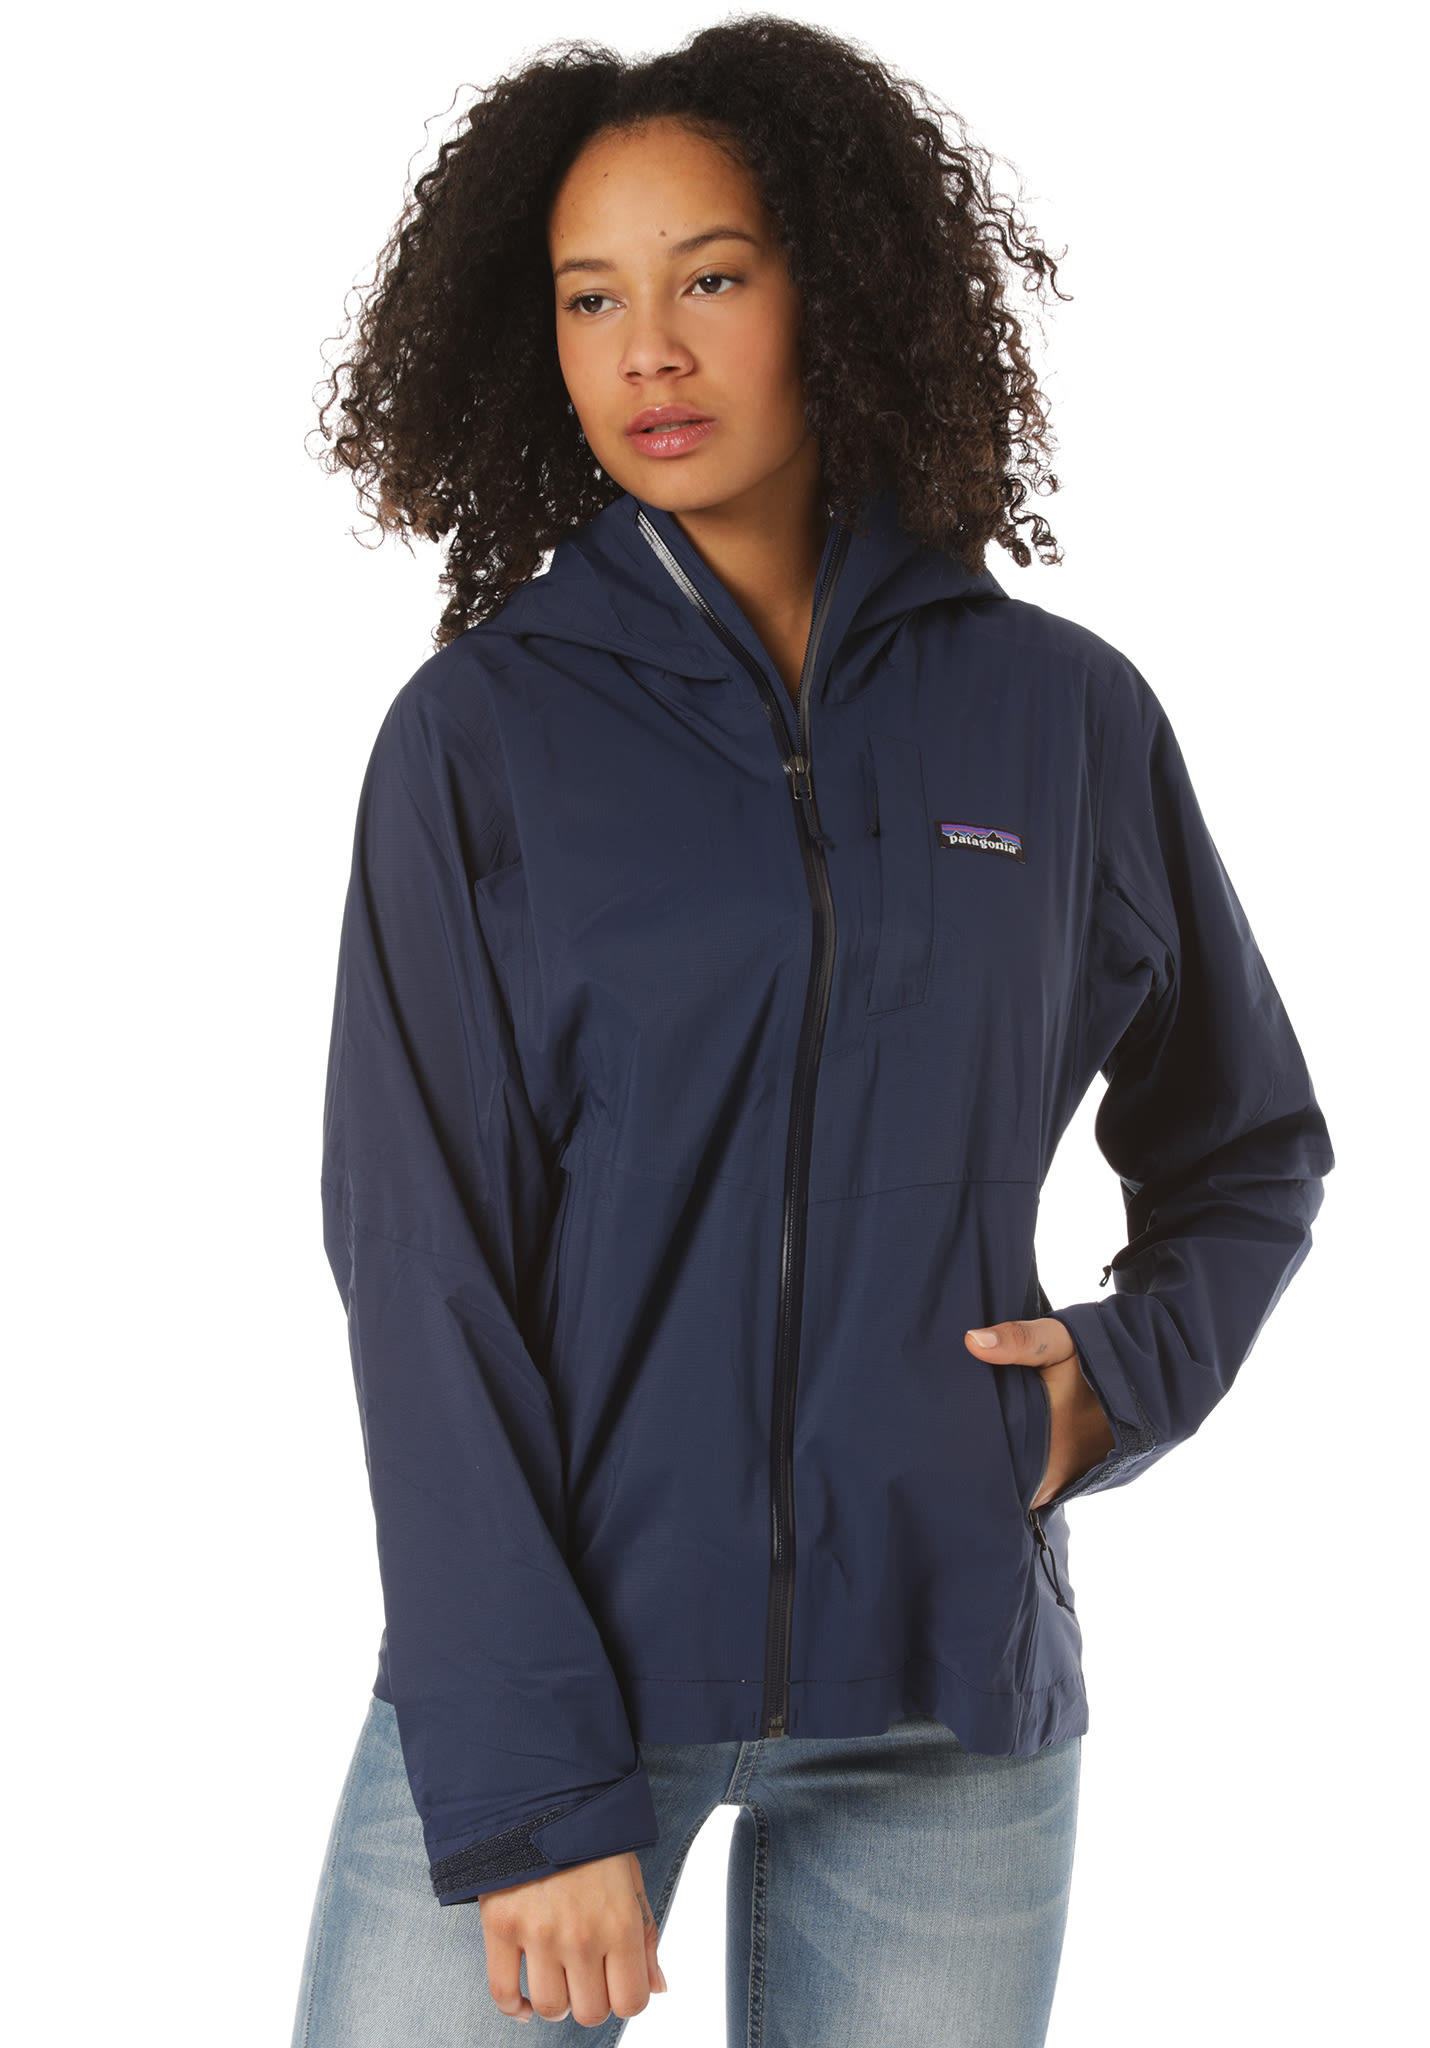 cheap for sale united kingdom elegant in style PATAGONIA Stretch Rainshadow - Outdoor Jacket for Women - Blue